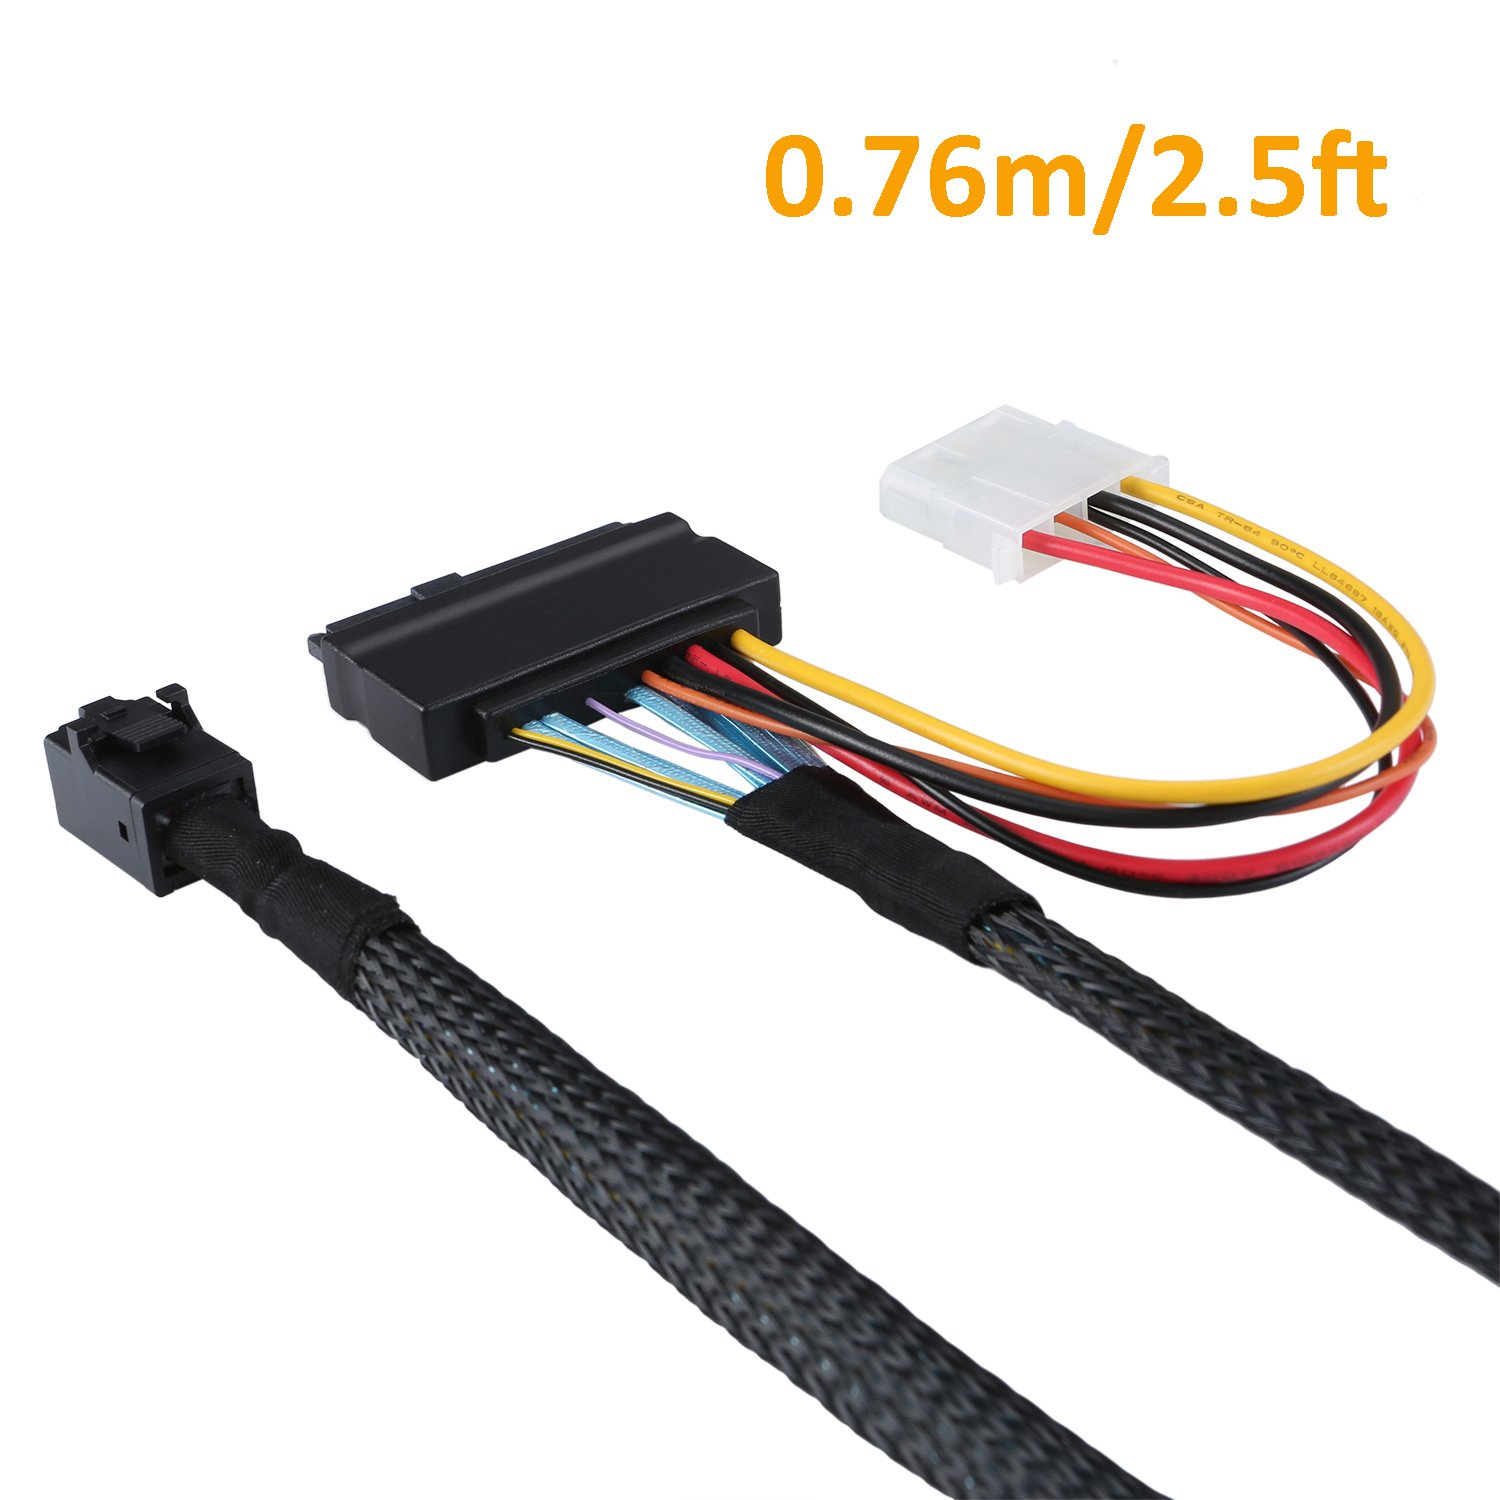 CableCreation 2.5FT Mini SAS HD Cable Internal Mini SAS SFF 8643 to U.2 SFF 8639 Cable with 4 Pin SATA Power Connector for Workstations,Servers and More by CableCreation (Image #2)